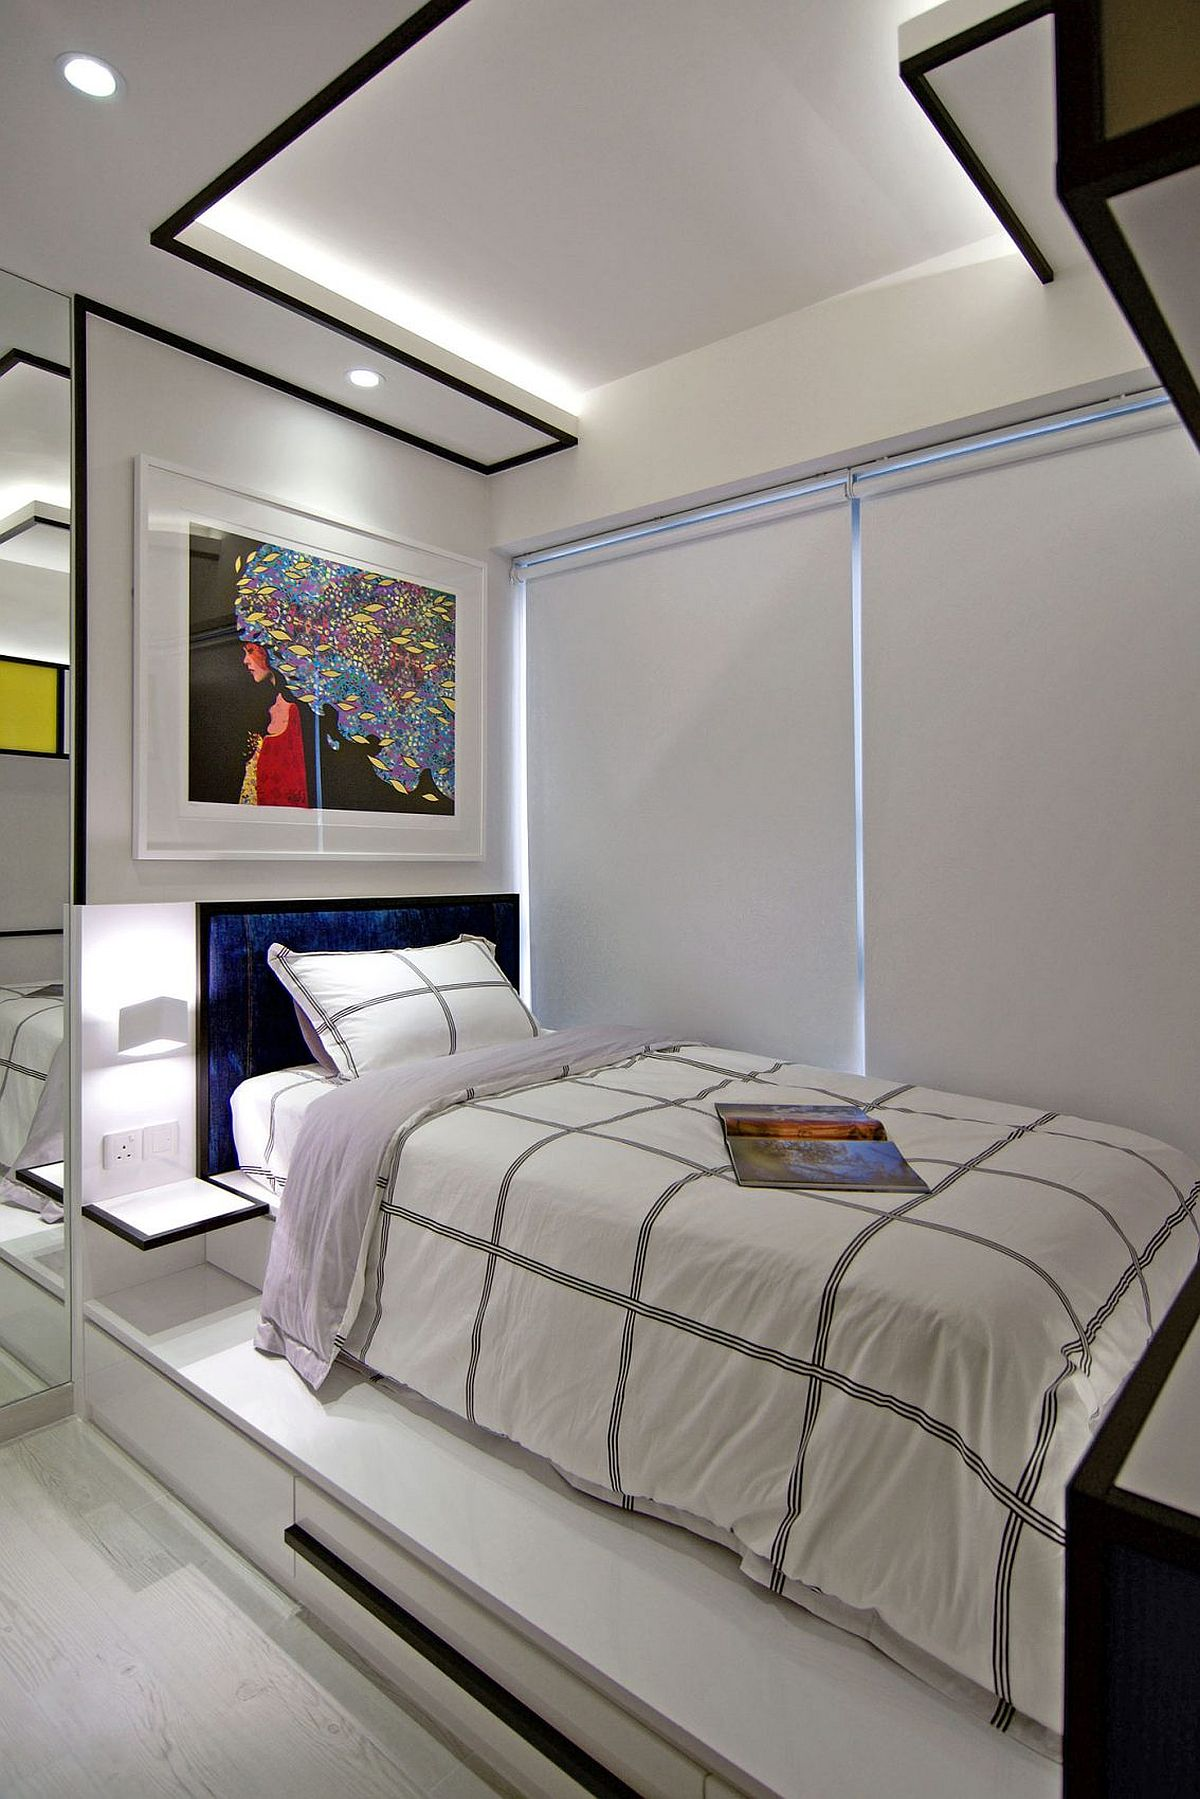 Bold black lines of the ceiling are also inspired by Piet Mondrian's work